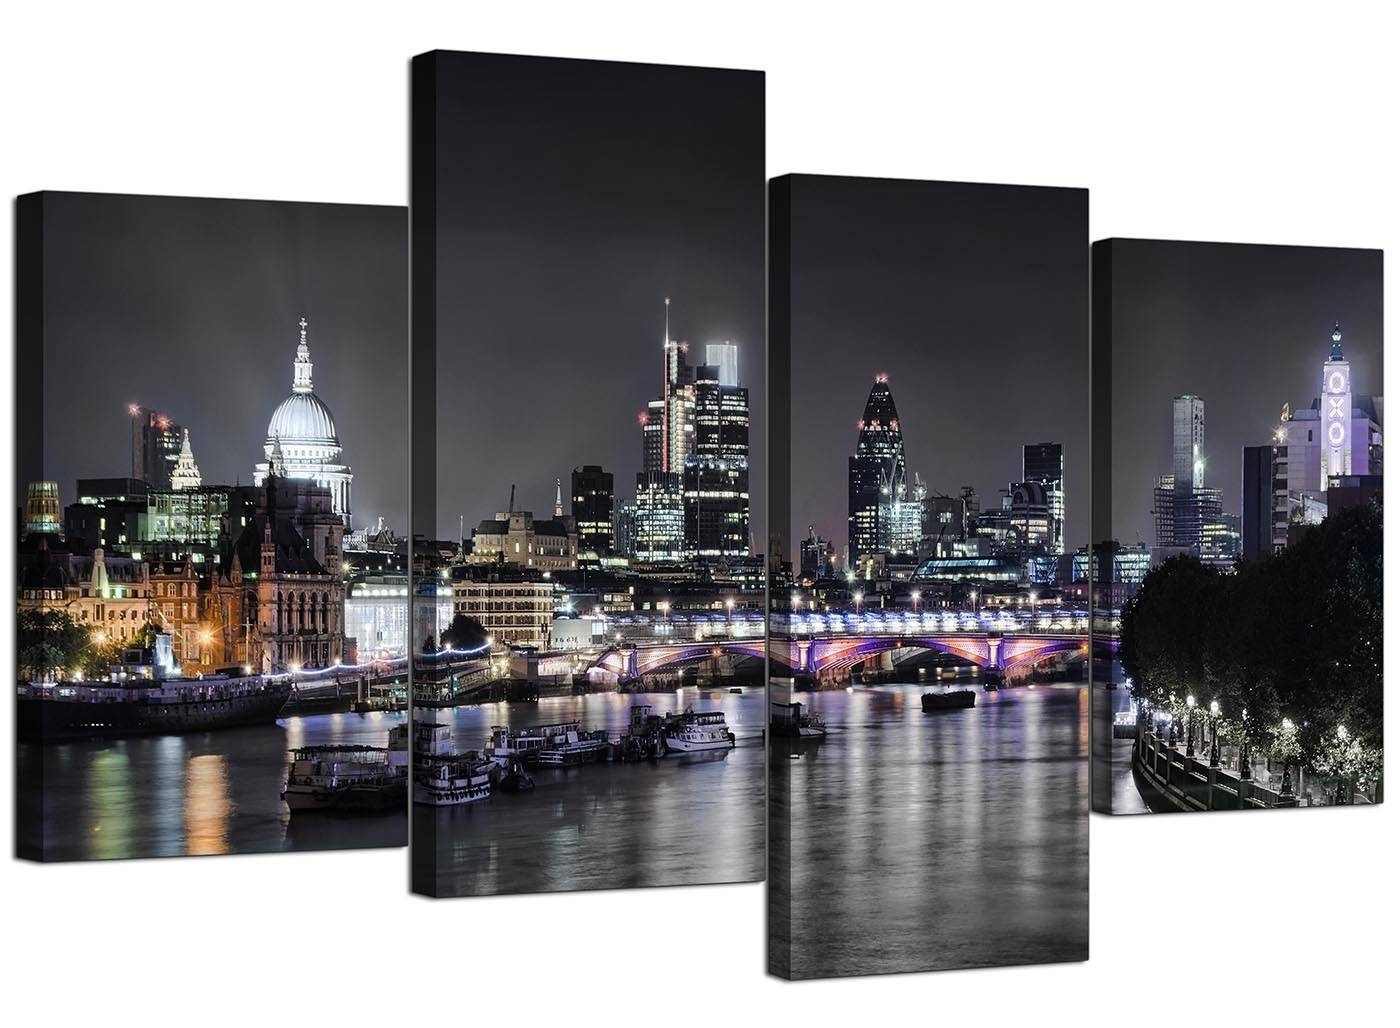 Canvas Wall Art Of London Skyline For Your Living Room – 4 Panel Within Current Cityscape Canvas Wall Art (View 5 of 20)